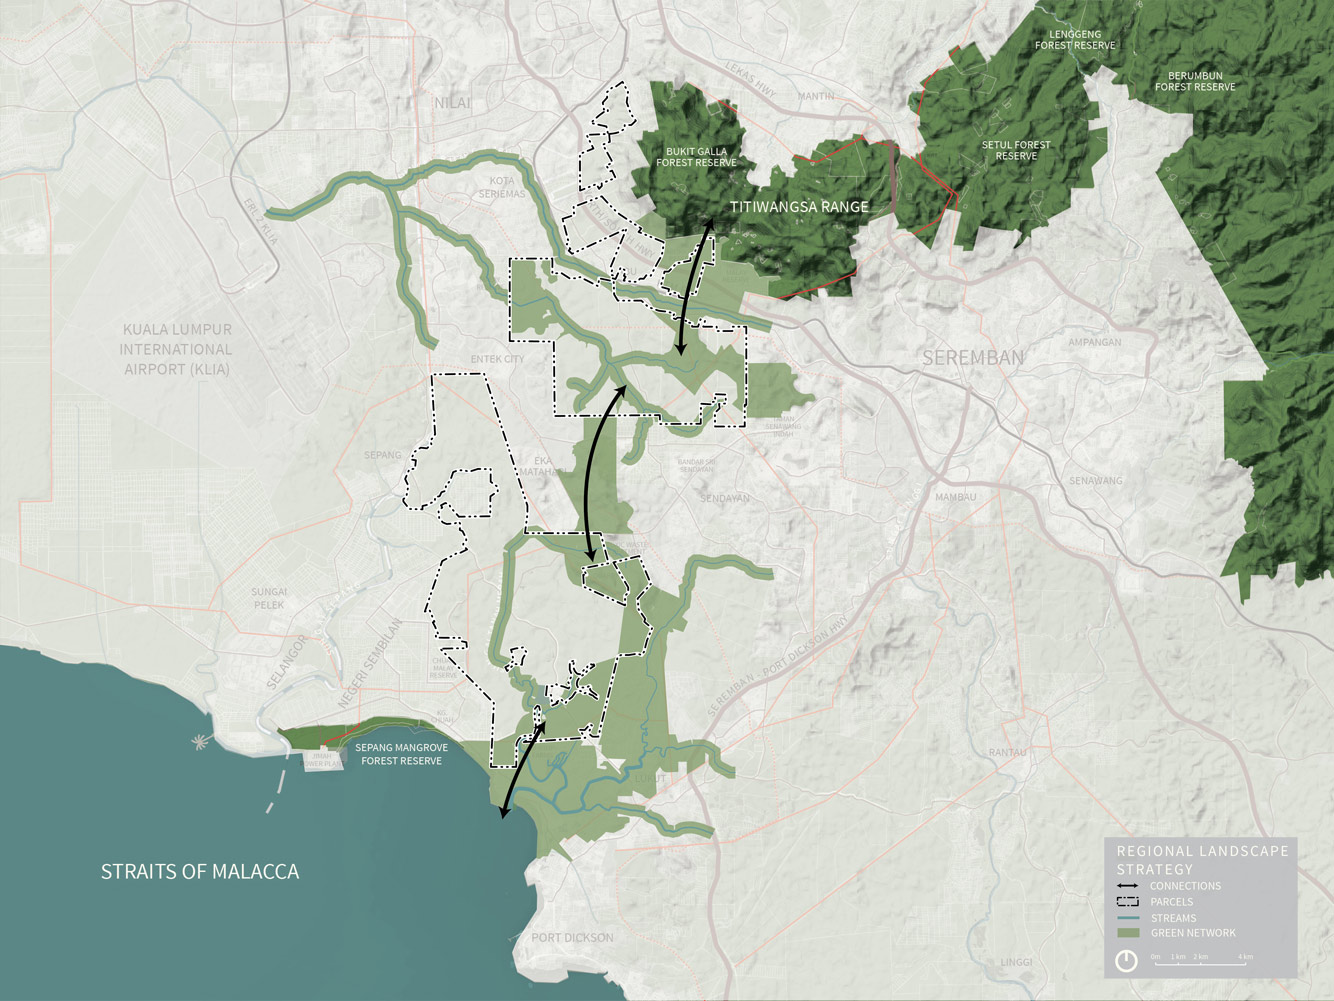 Malaysia-Vision-Valley_Landscape-Strategy_Regional-Open-Space-Connection-Green-Network_Klopfer-Martin.jpg